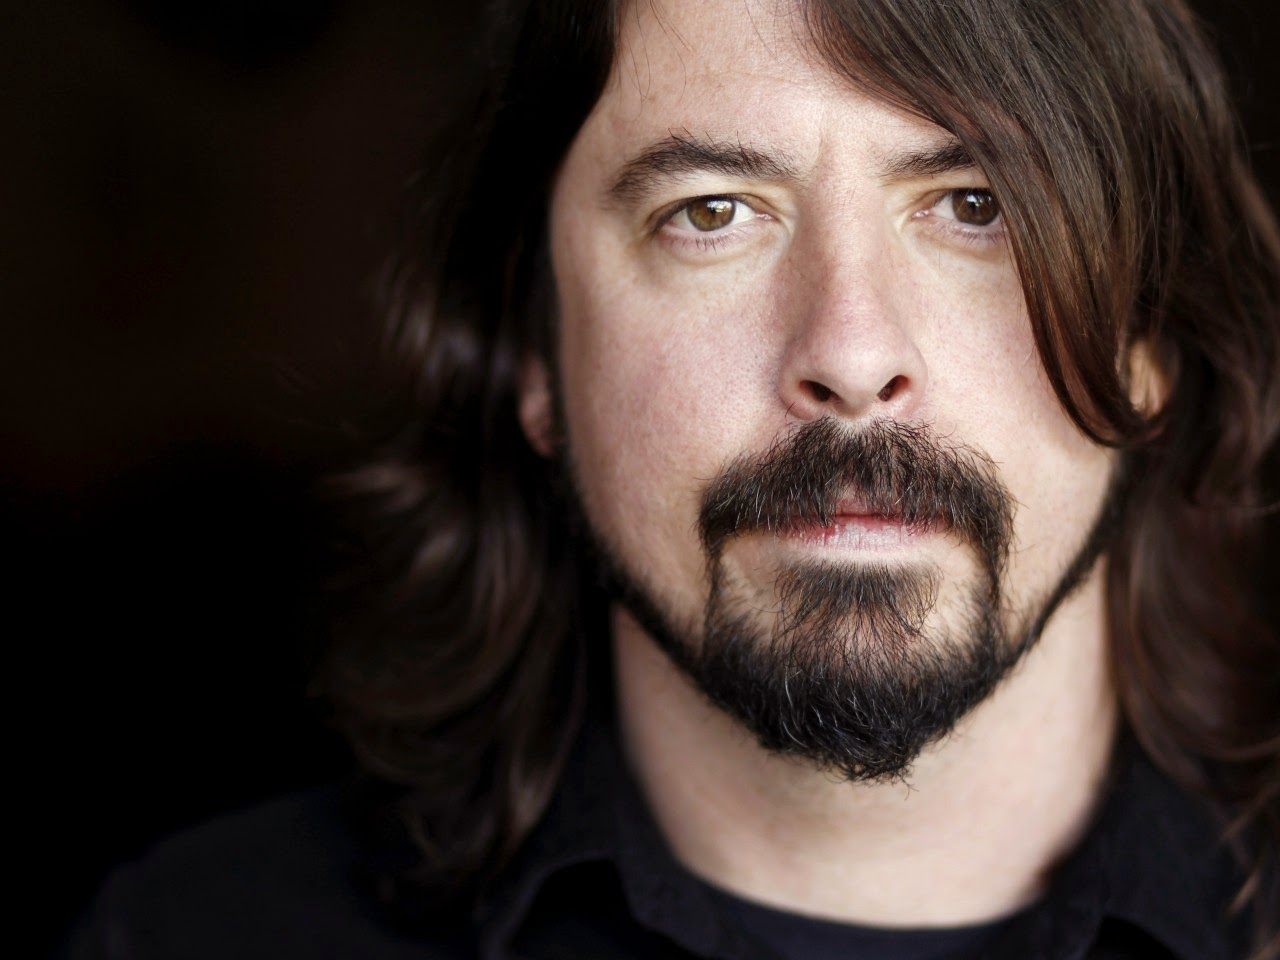 dave grohl looking at you